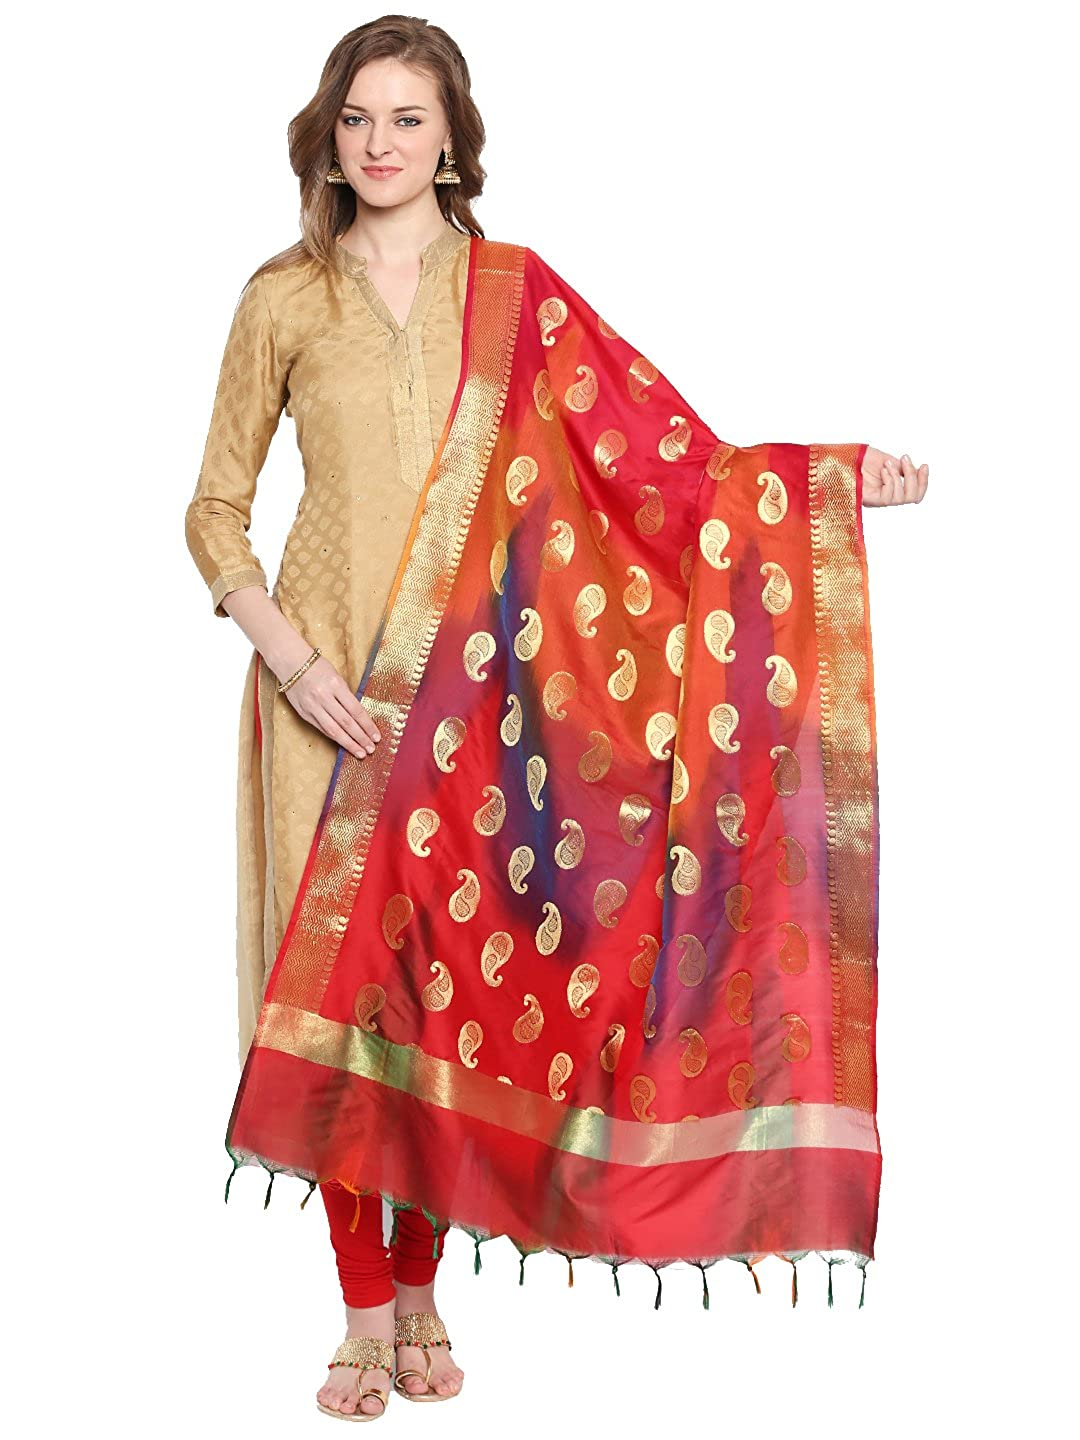 Dupatta Bazaar Woman's Red & Gold Shaded Banarasi Silk Dupatta DB1504